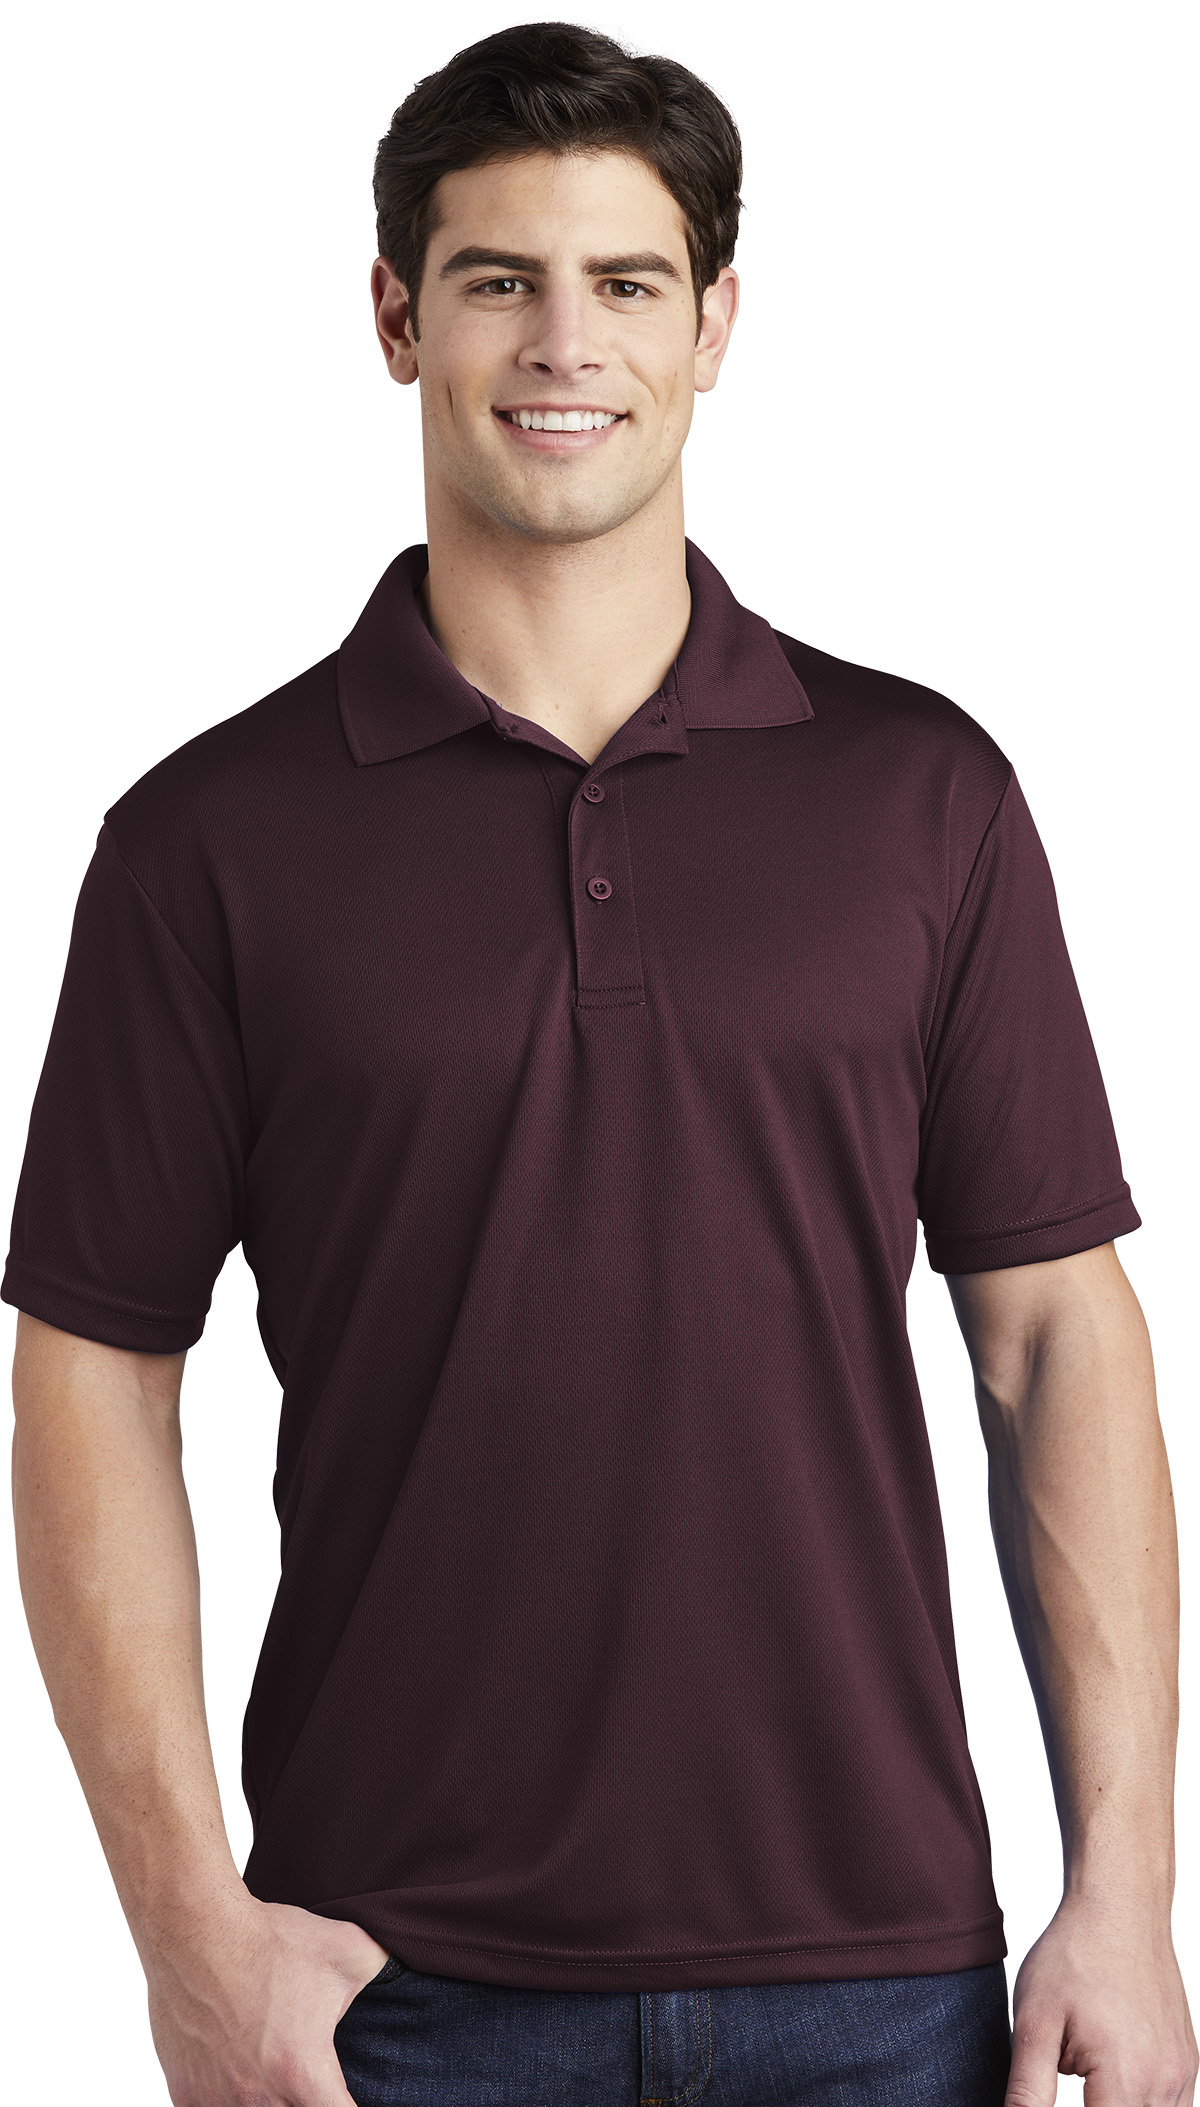 Queensboro Printed Men's AP3 All-Purpose Performance Polo